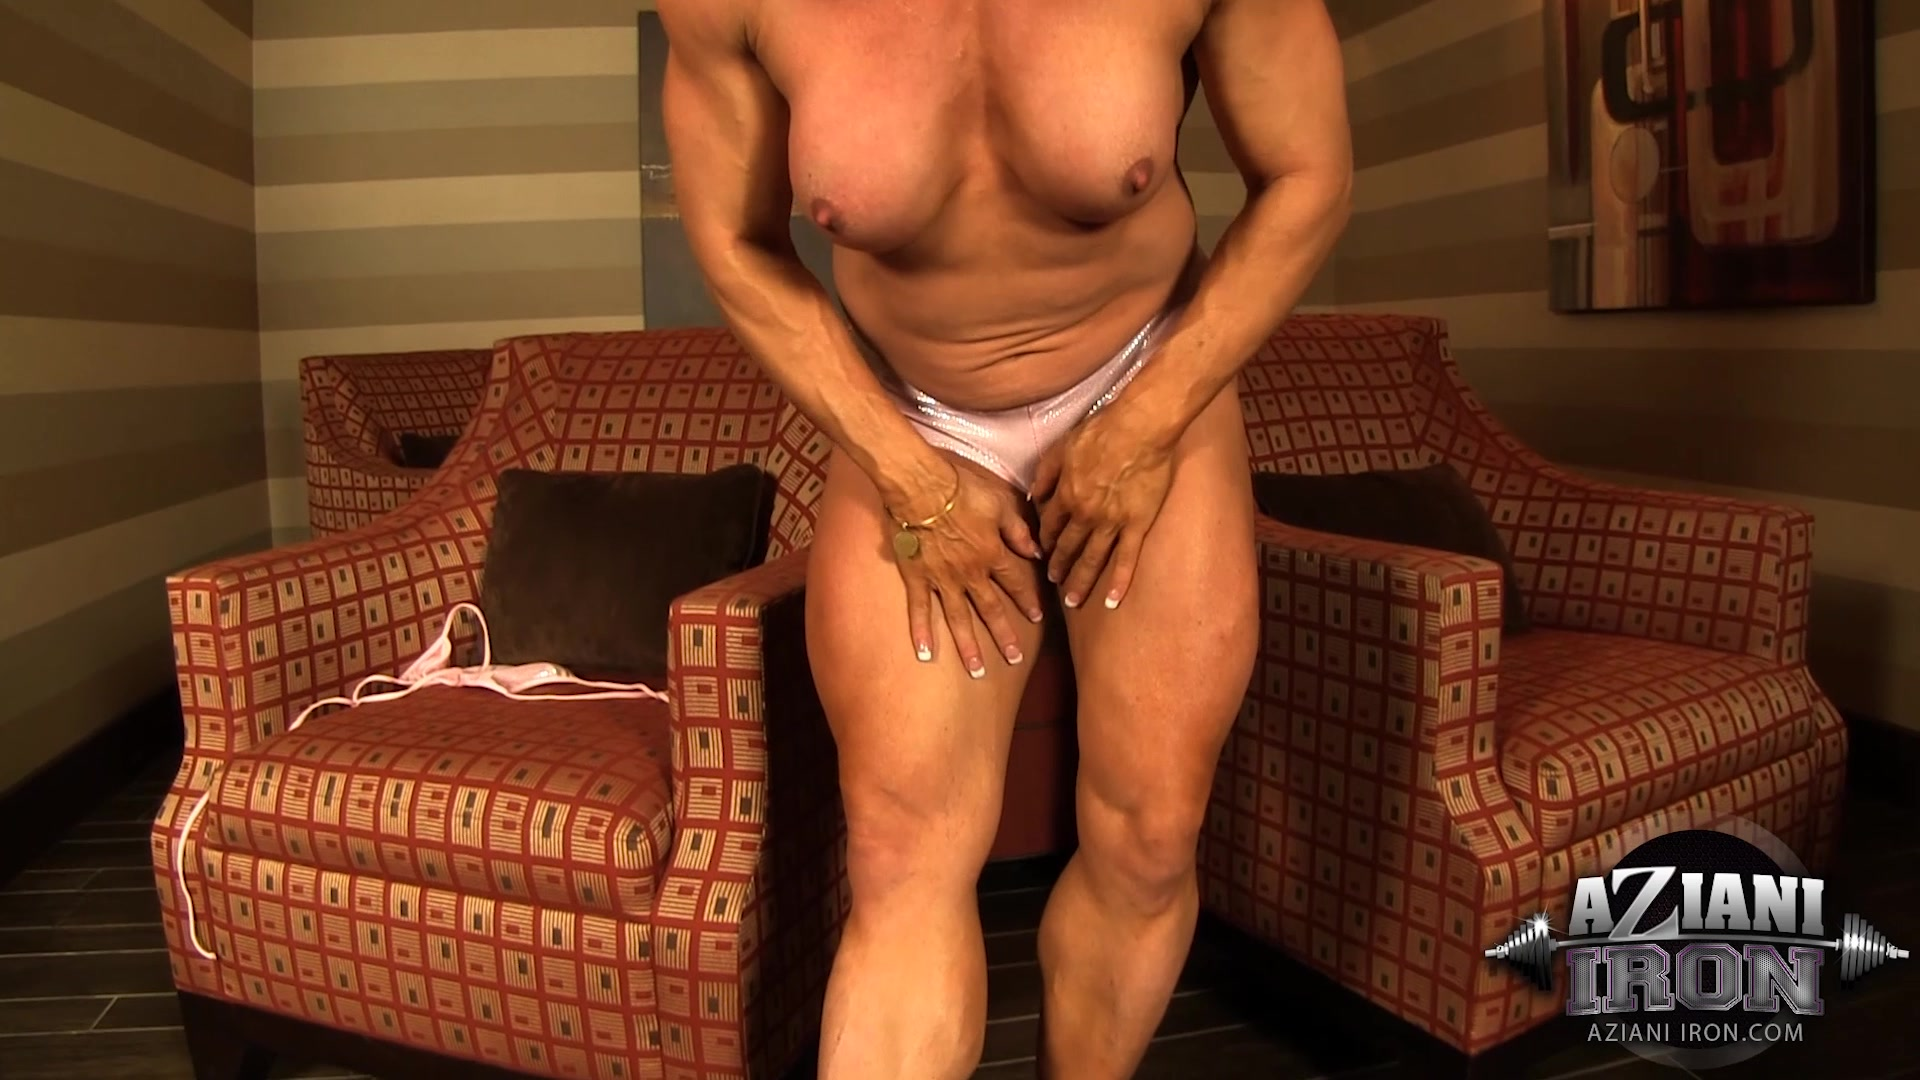 Hot Milf Casting Couch Raw Photo Captures Police